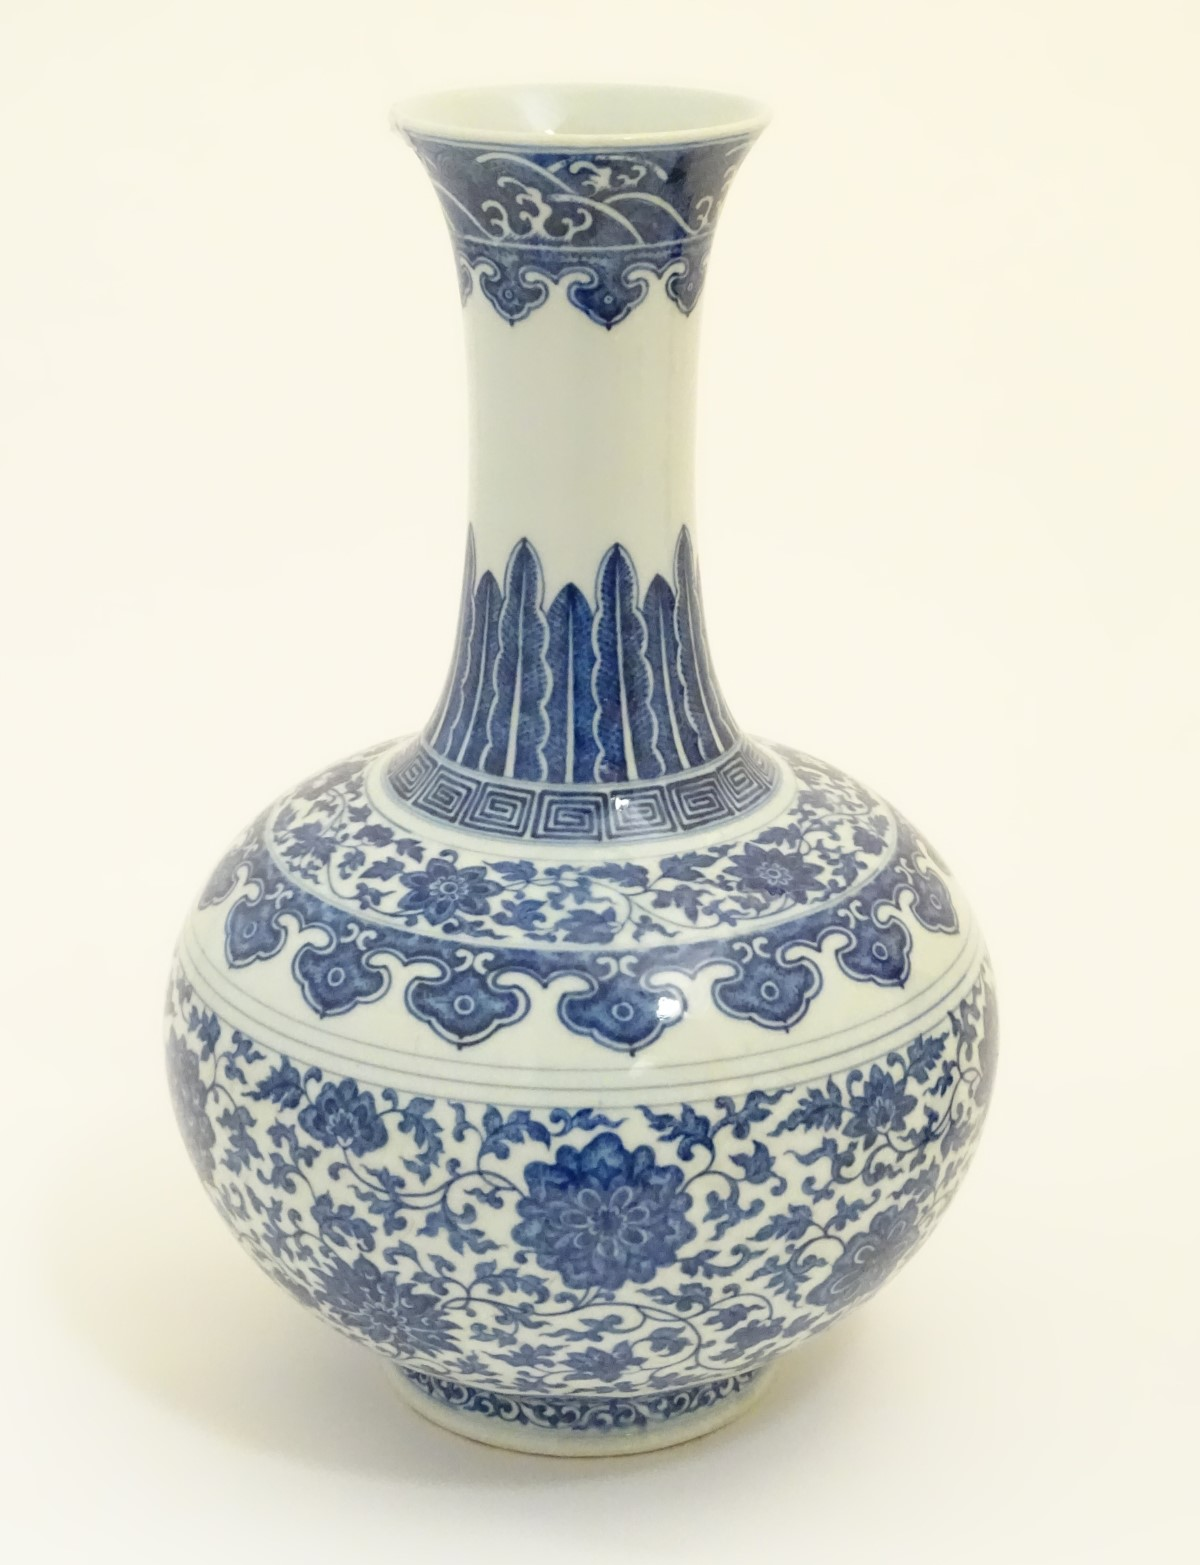 Lot 14 - A Chinese blue and white 'Shang Ping' vase decorated with a broad band of flowers and scrolling